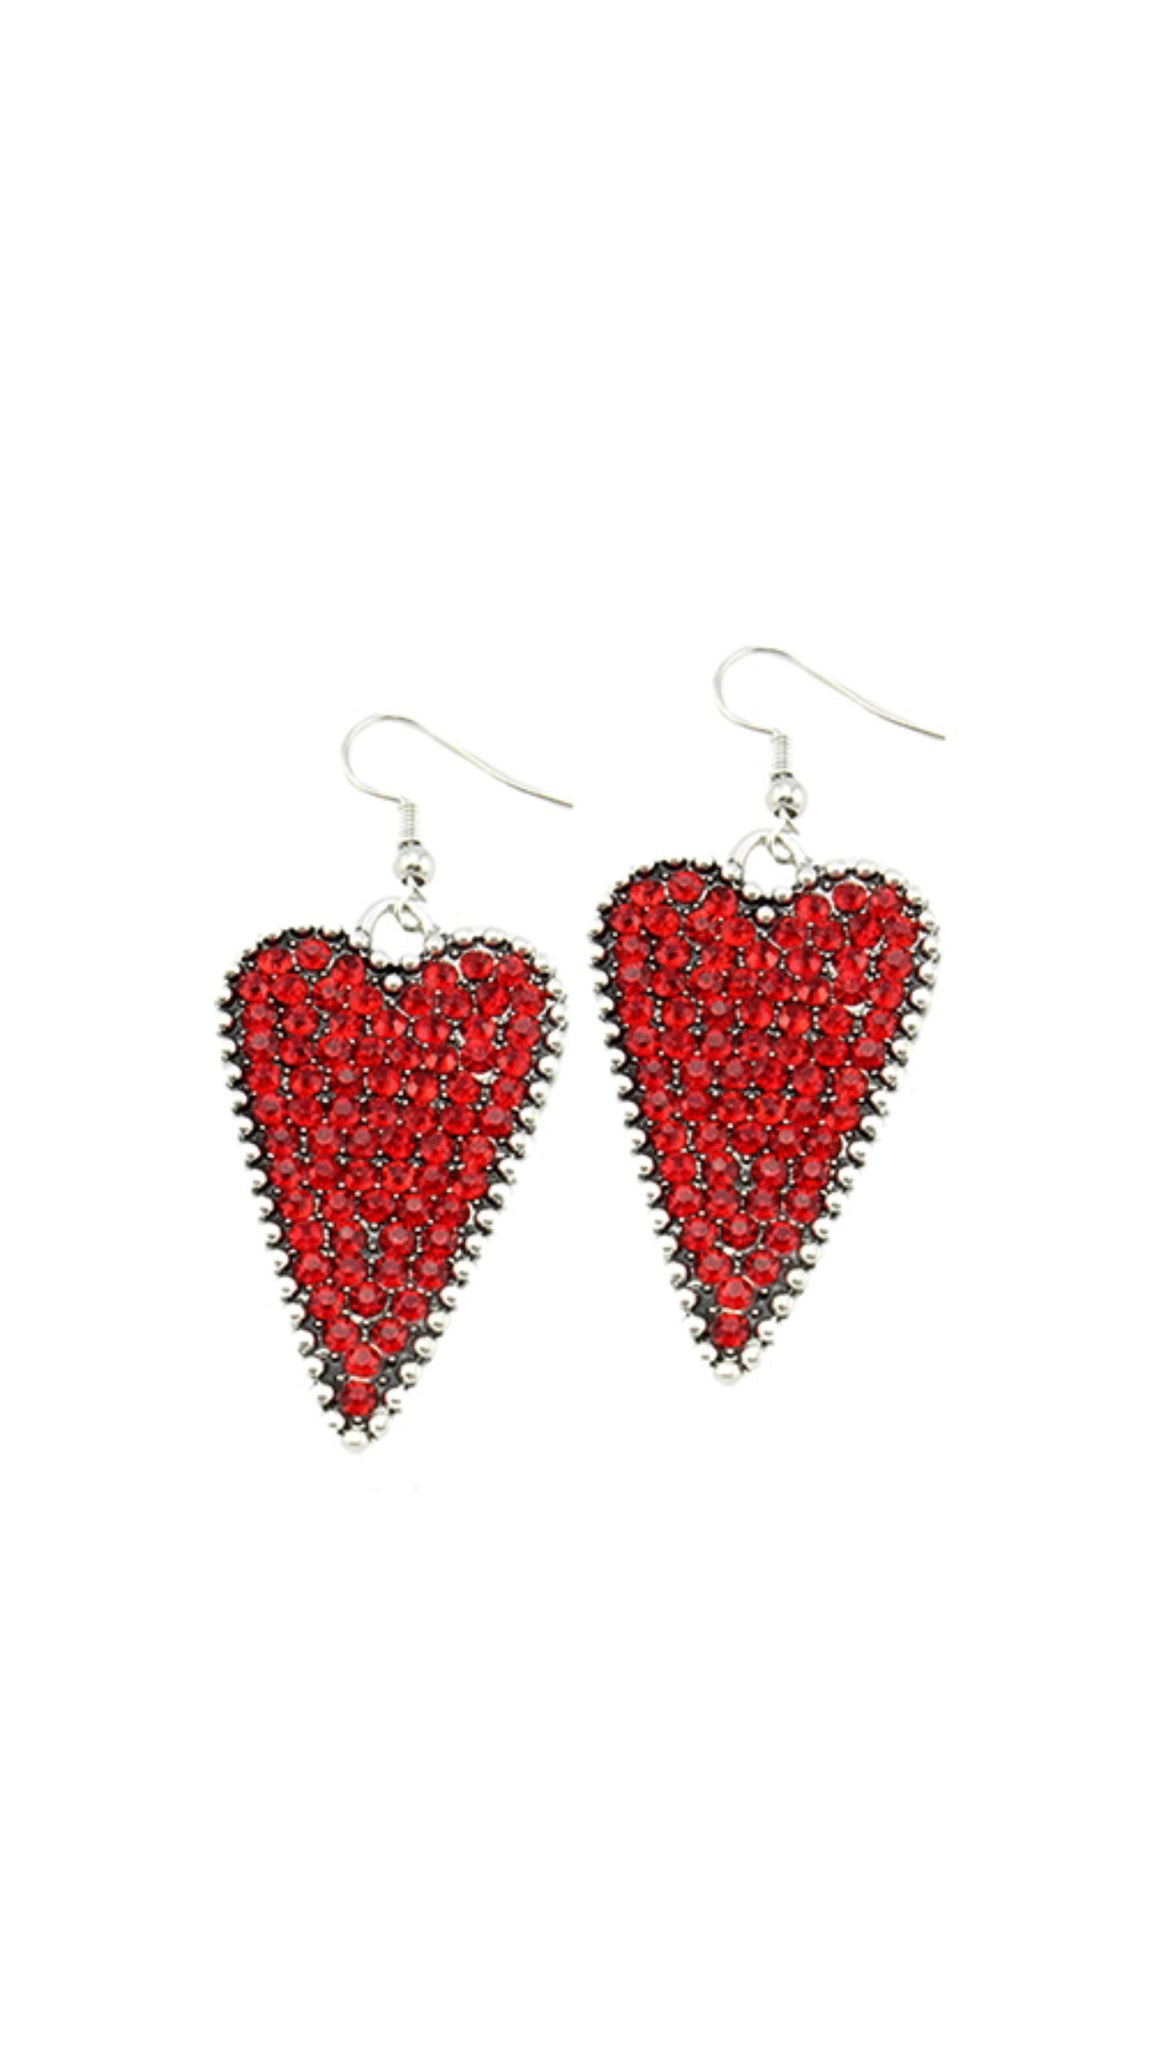 Rubie Heart Earrings